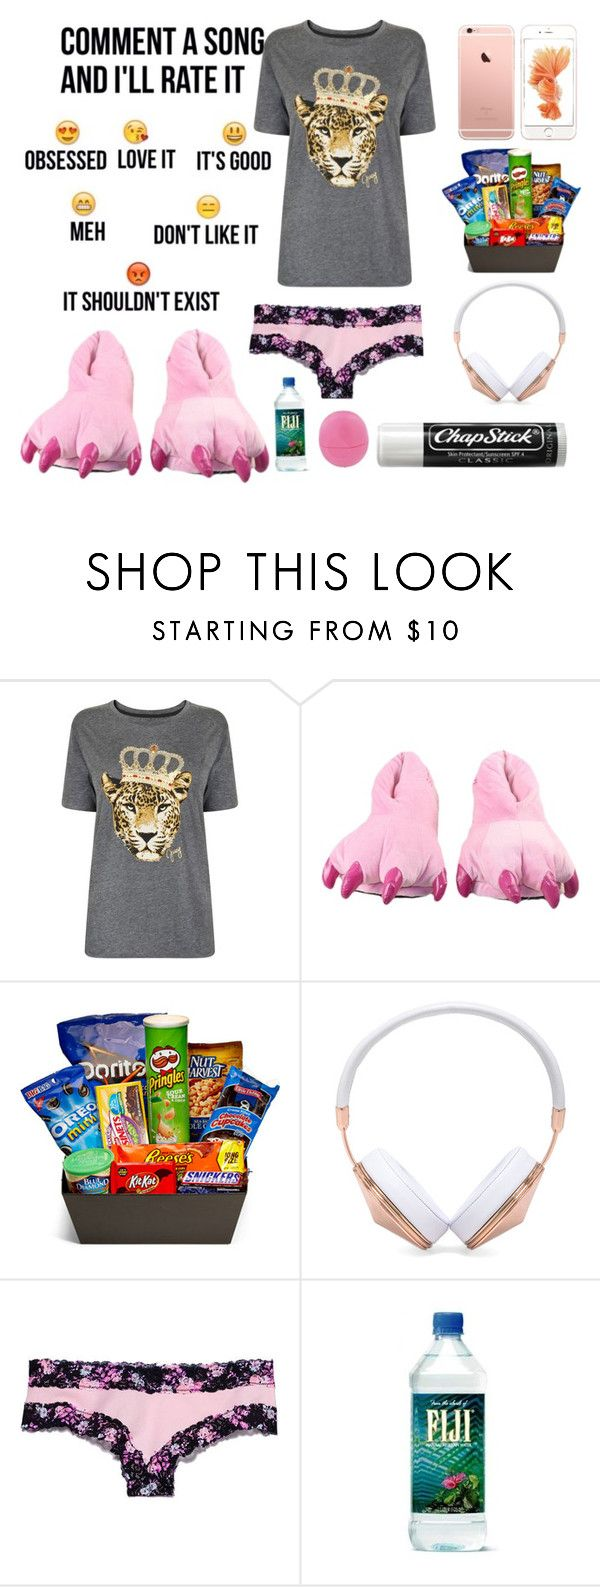 """G nite and plz comment"" by lenathemusicfreak-mindless ❤ liked on Polyvore featuring Chapstick, Juicy Couture, Junk Food Clothing, Frends, Victoria's Secret PINK and Eos"